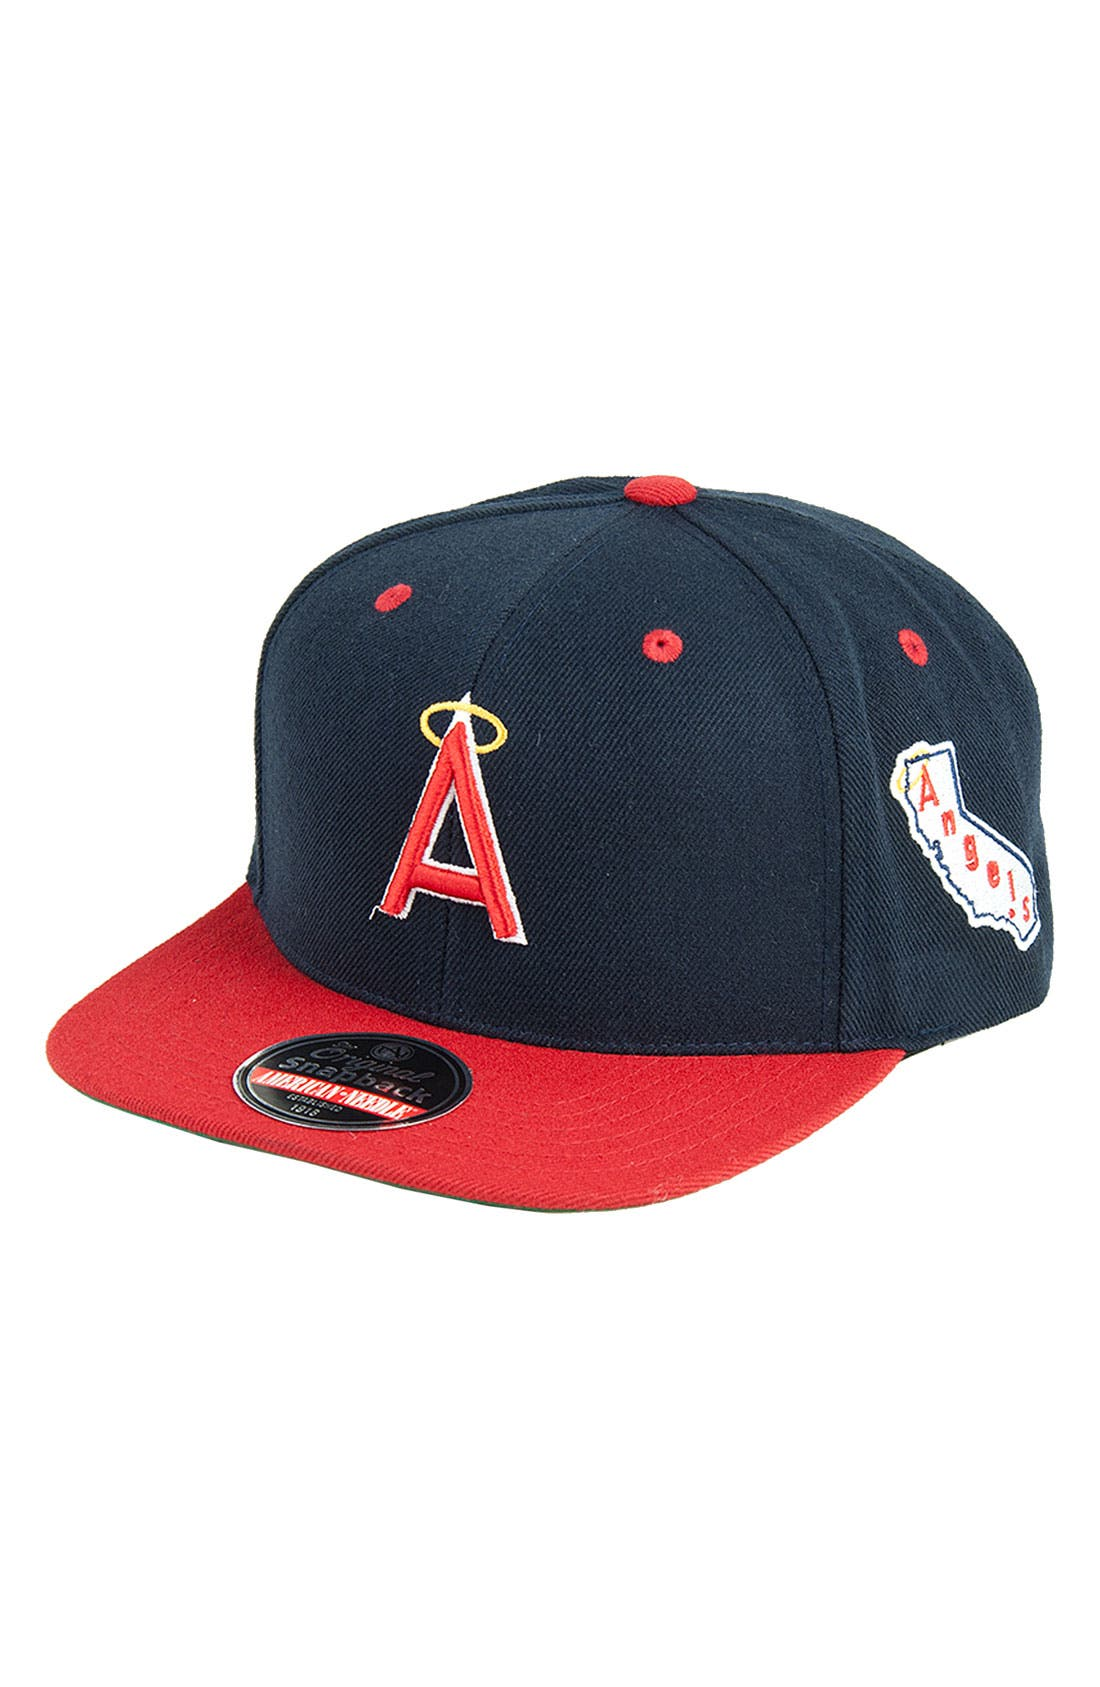 Main Image - American Needle 'Blockhead Angels' Snapback Baseball Cap